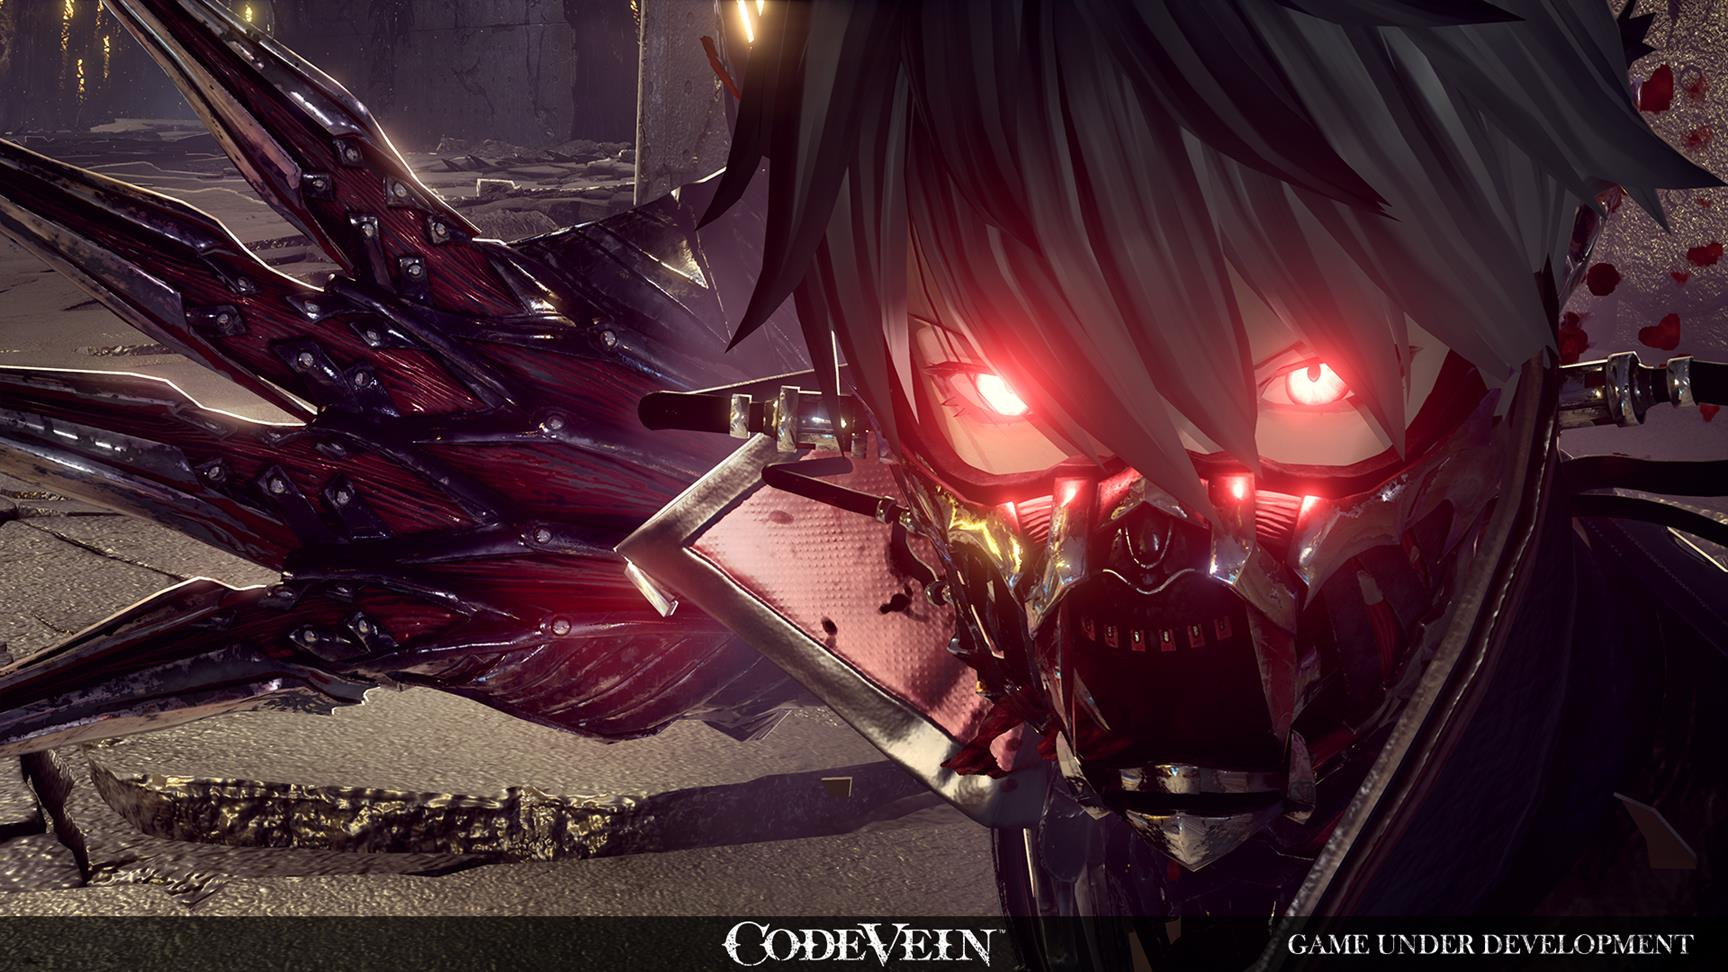 If You Thought Code Vein Was Just Edgelord Anime Dark